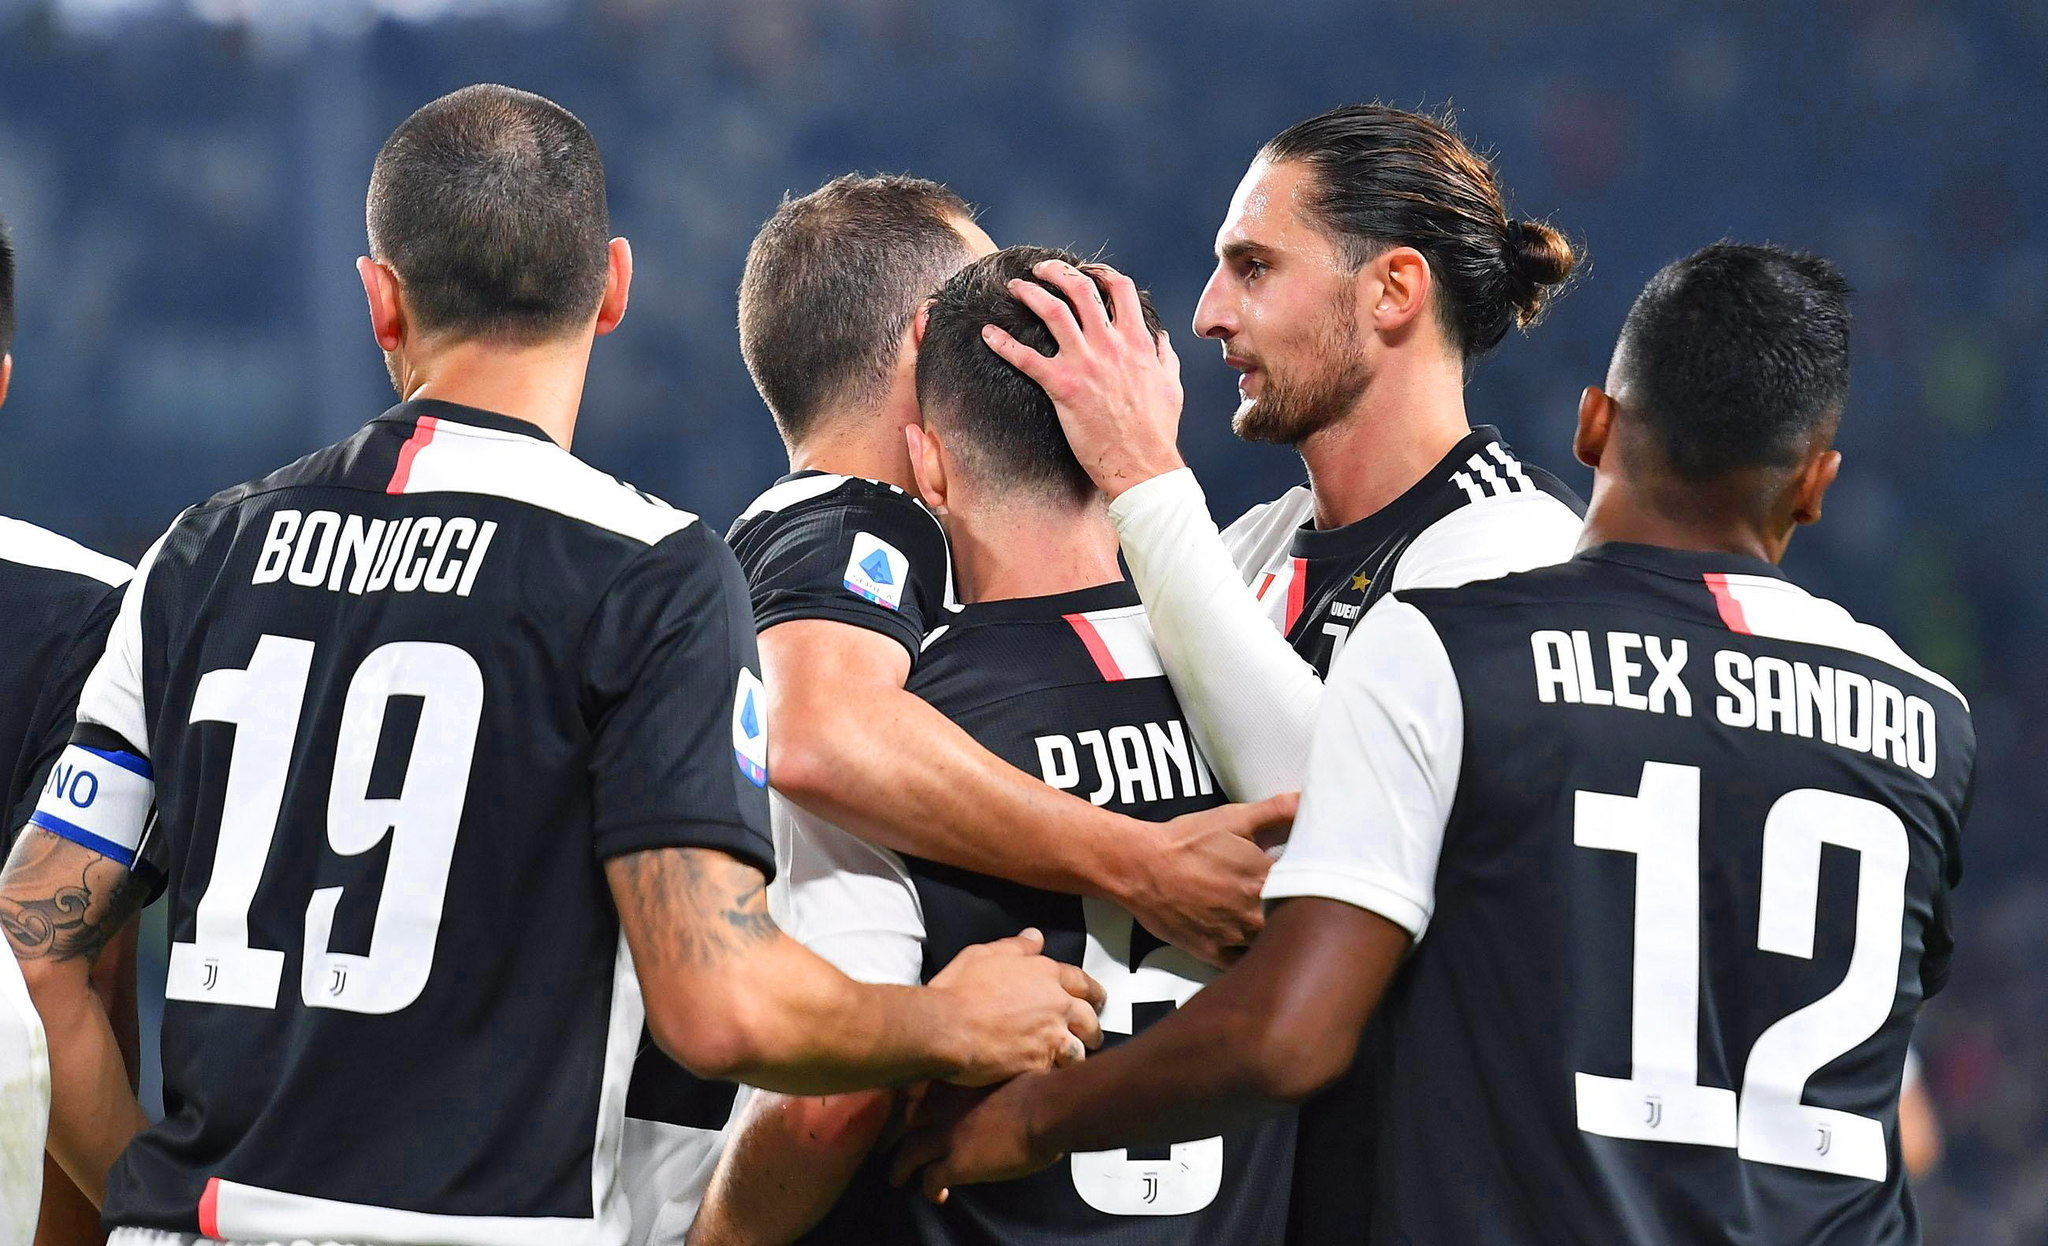 Turin (Italy), 19/10/2019.- <HIT>Juventus</HIT> Miralem Pjanic (C) celebrates with teammates after scoring the 2-1 lead during the Italian Serie A soccer match between <HIT>Juventus</HIT> FC and Bologna FC in Turin, Italy, 19 October 2019. (Italia) EFE/EPA/ALESSANDRO DI MARCO